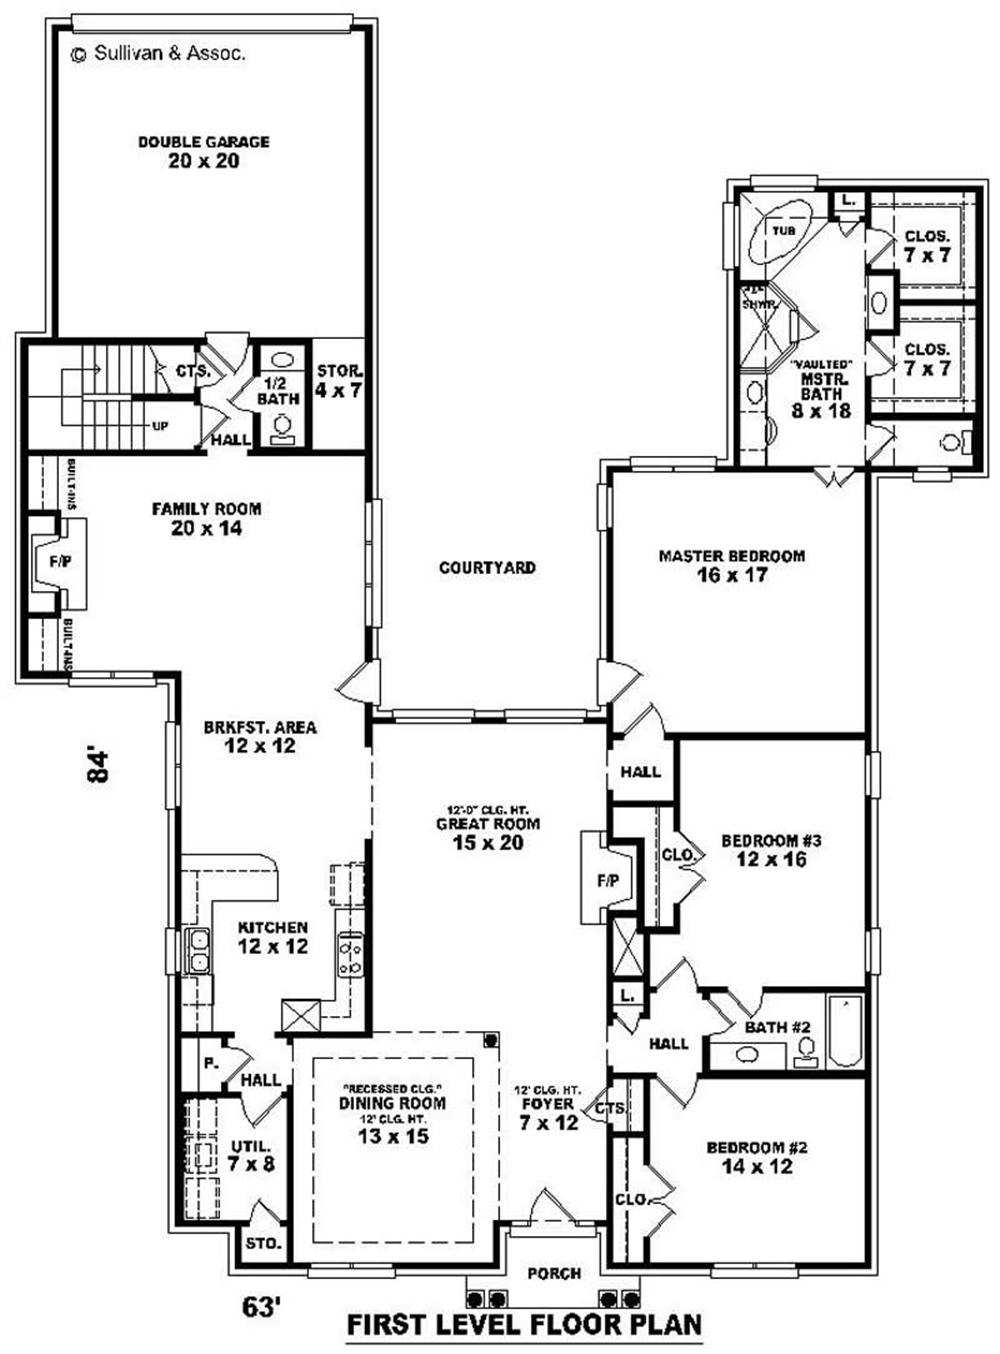 Large Images For House Plan 170 2041